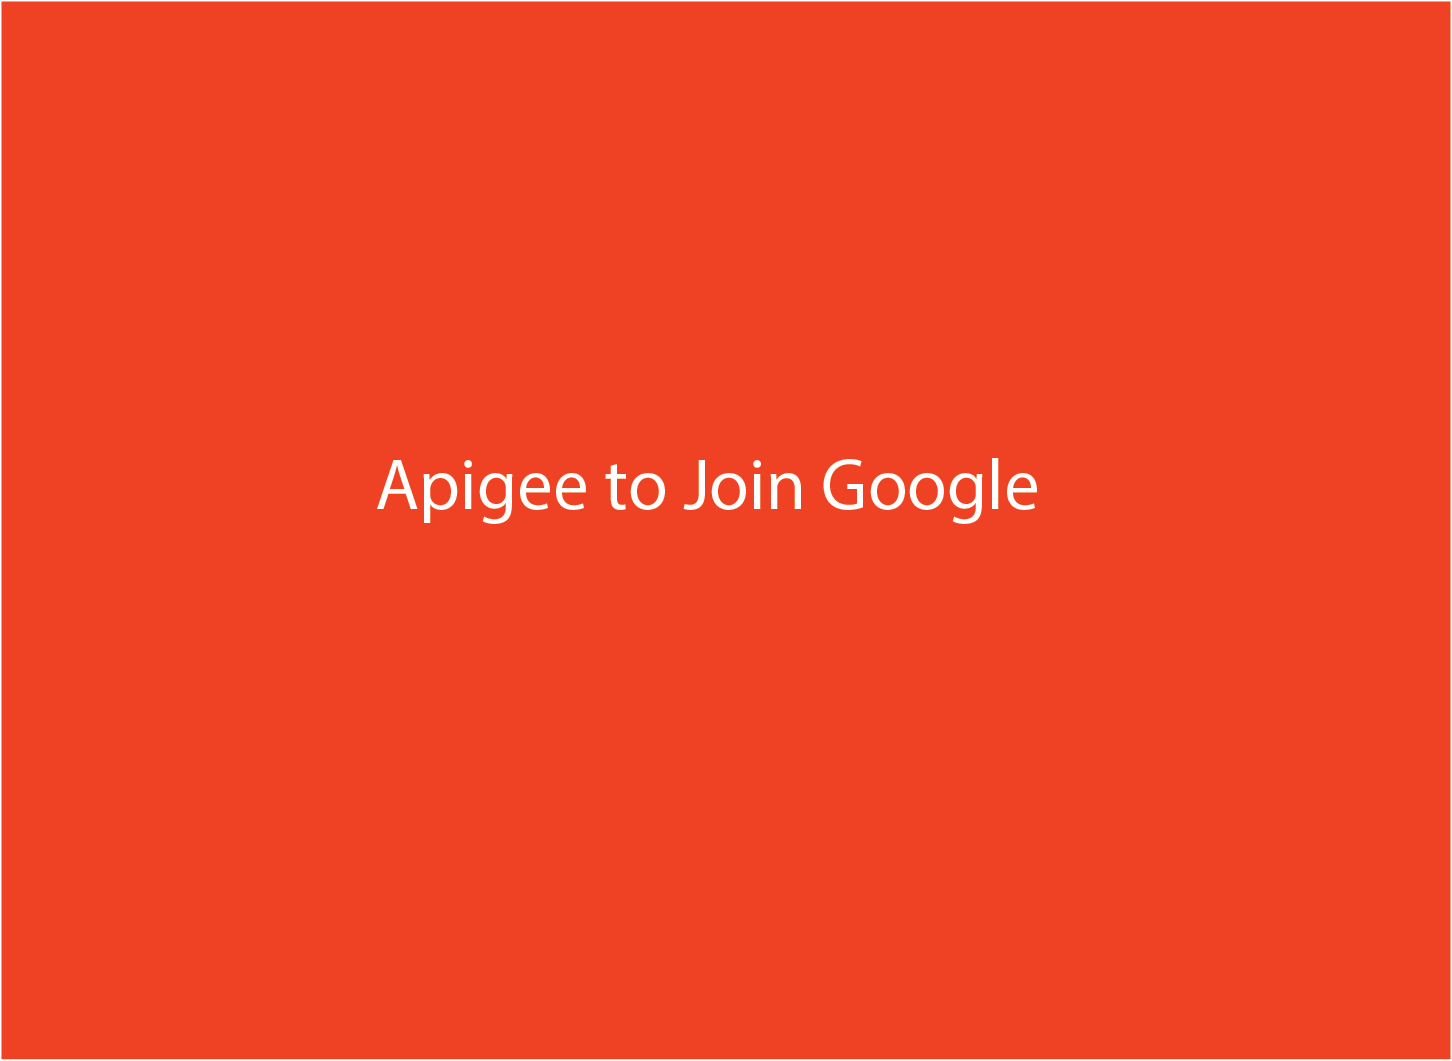 Google Acquires Apigee in $625 Million Deal to Expand Enterprise